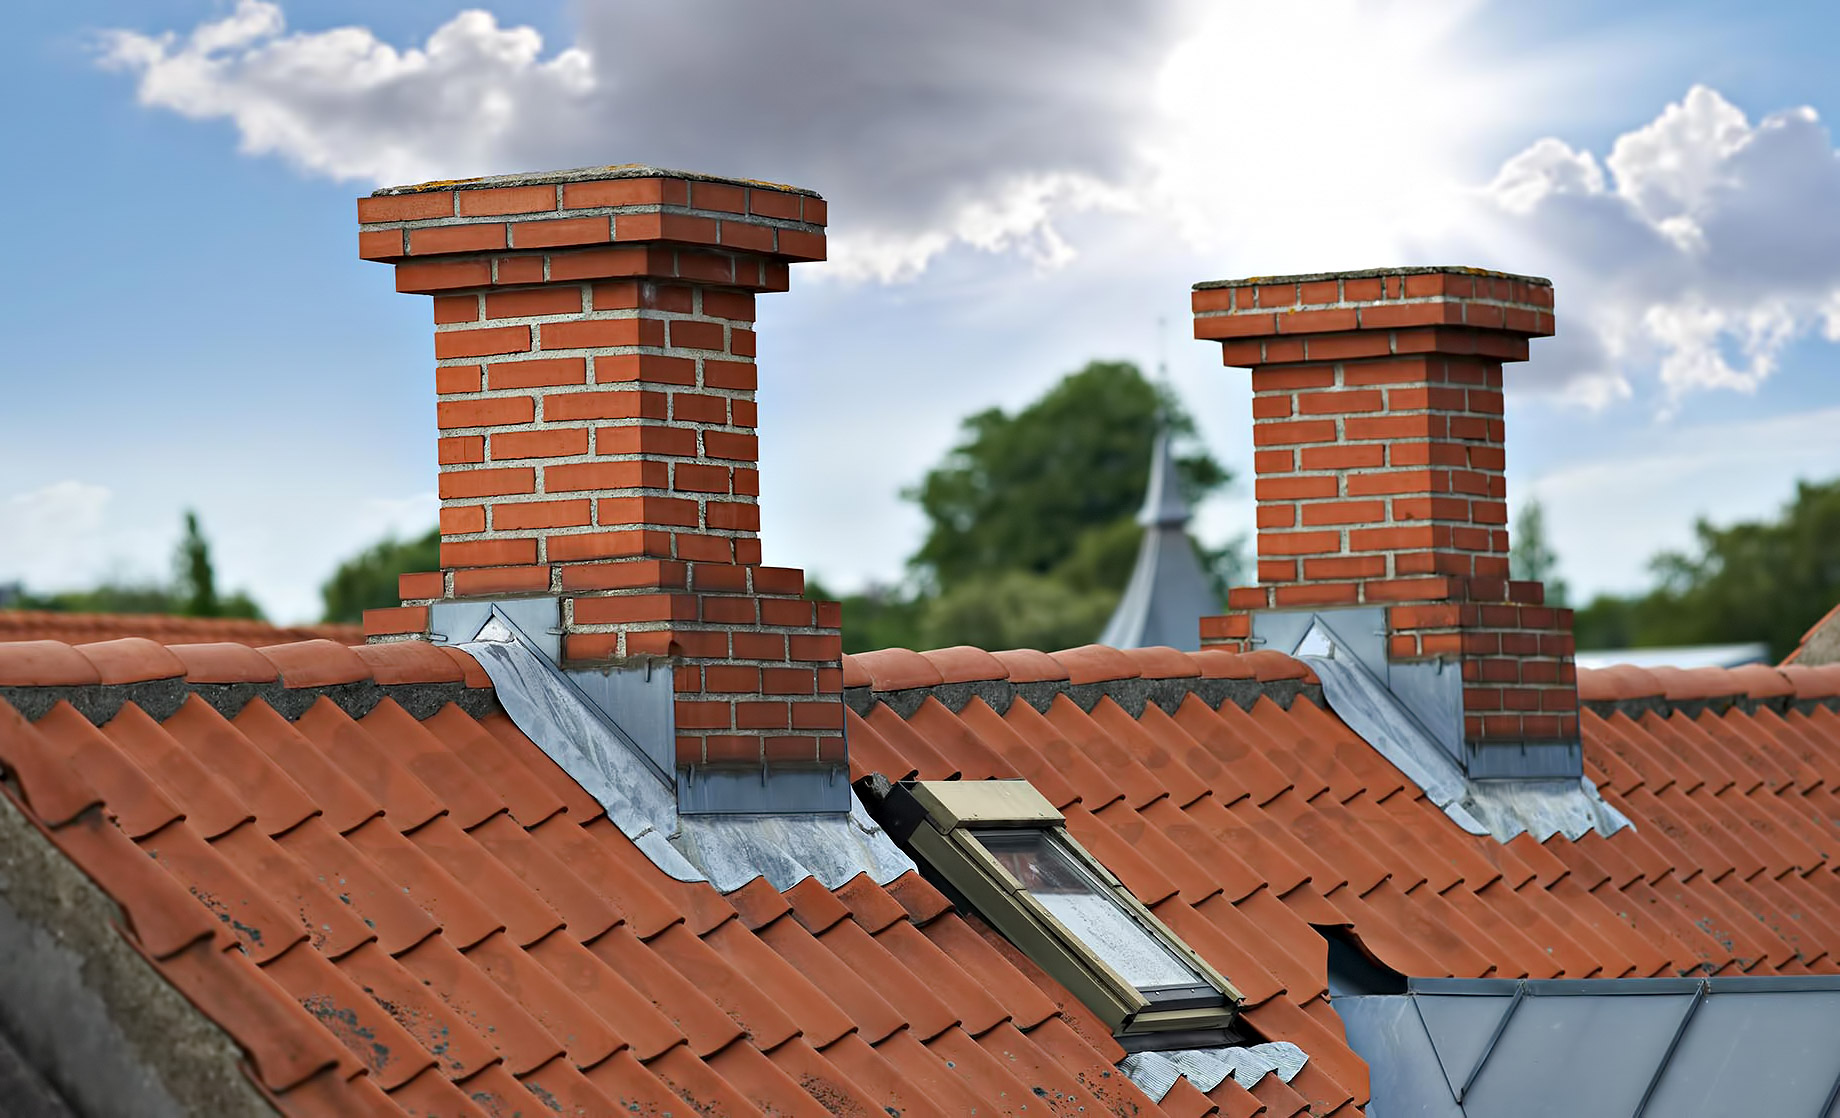 Chimney Repair and Maintenance - Home Renovation Tips - Fireplace Upgrade and Chimney Guide for Homeowners